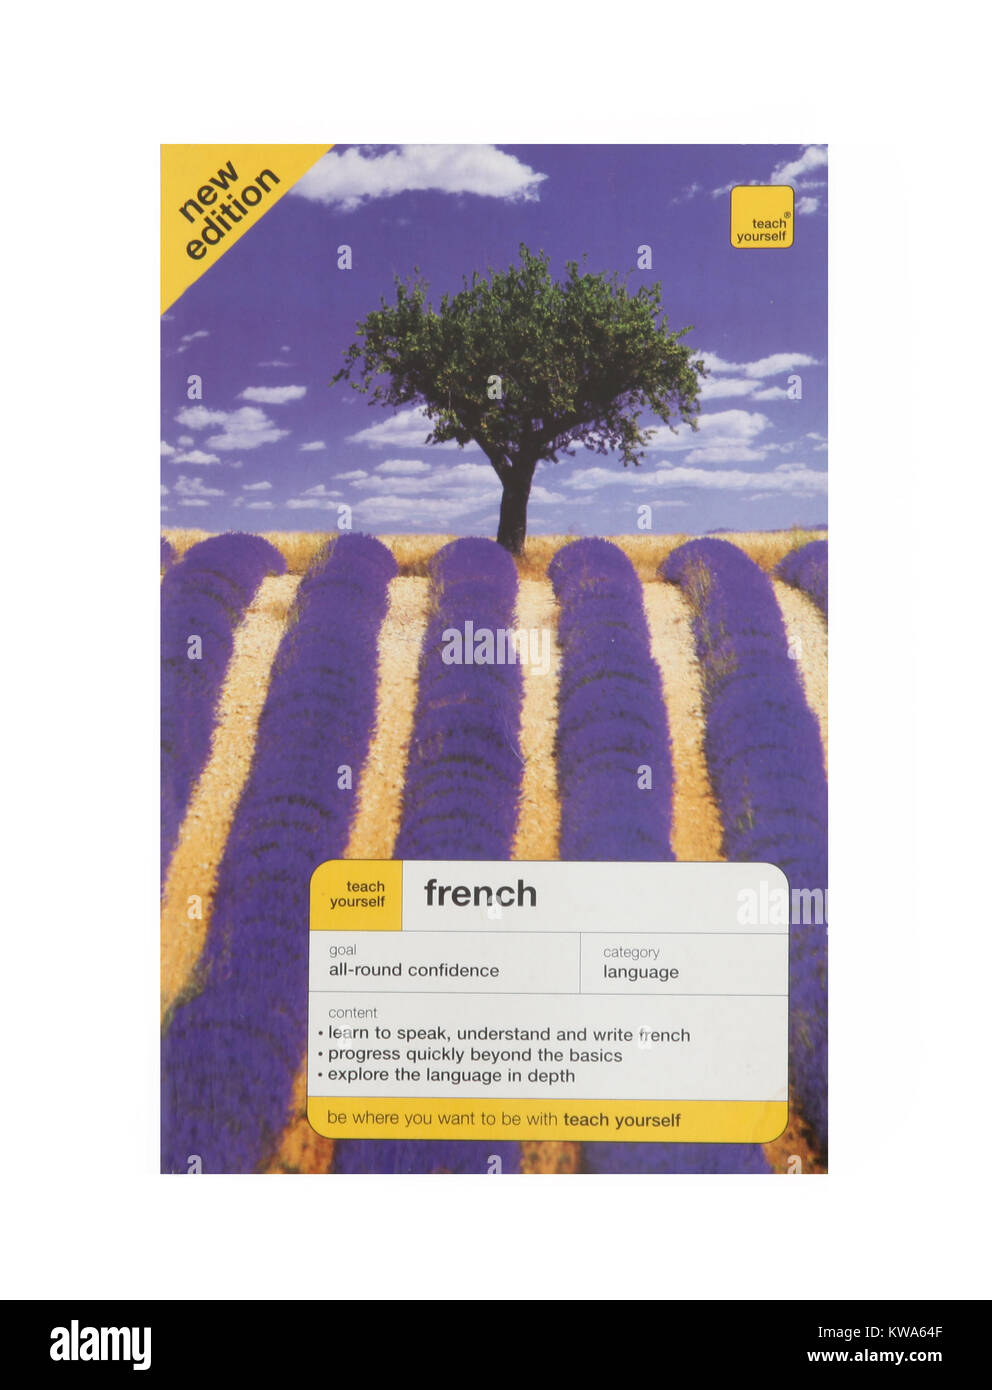 A teach yourself French Language book - Stock Image